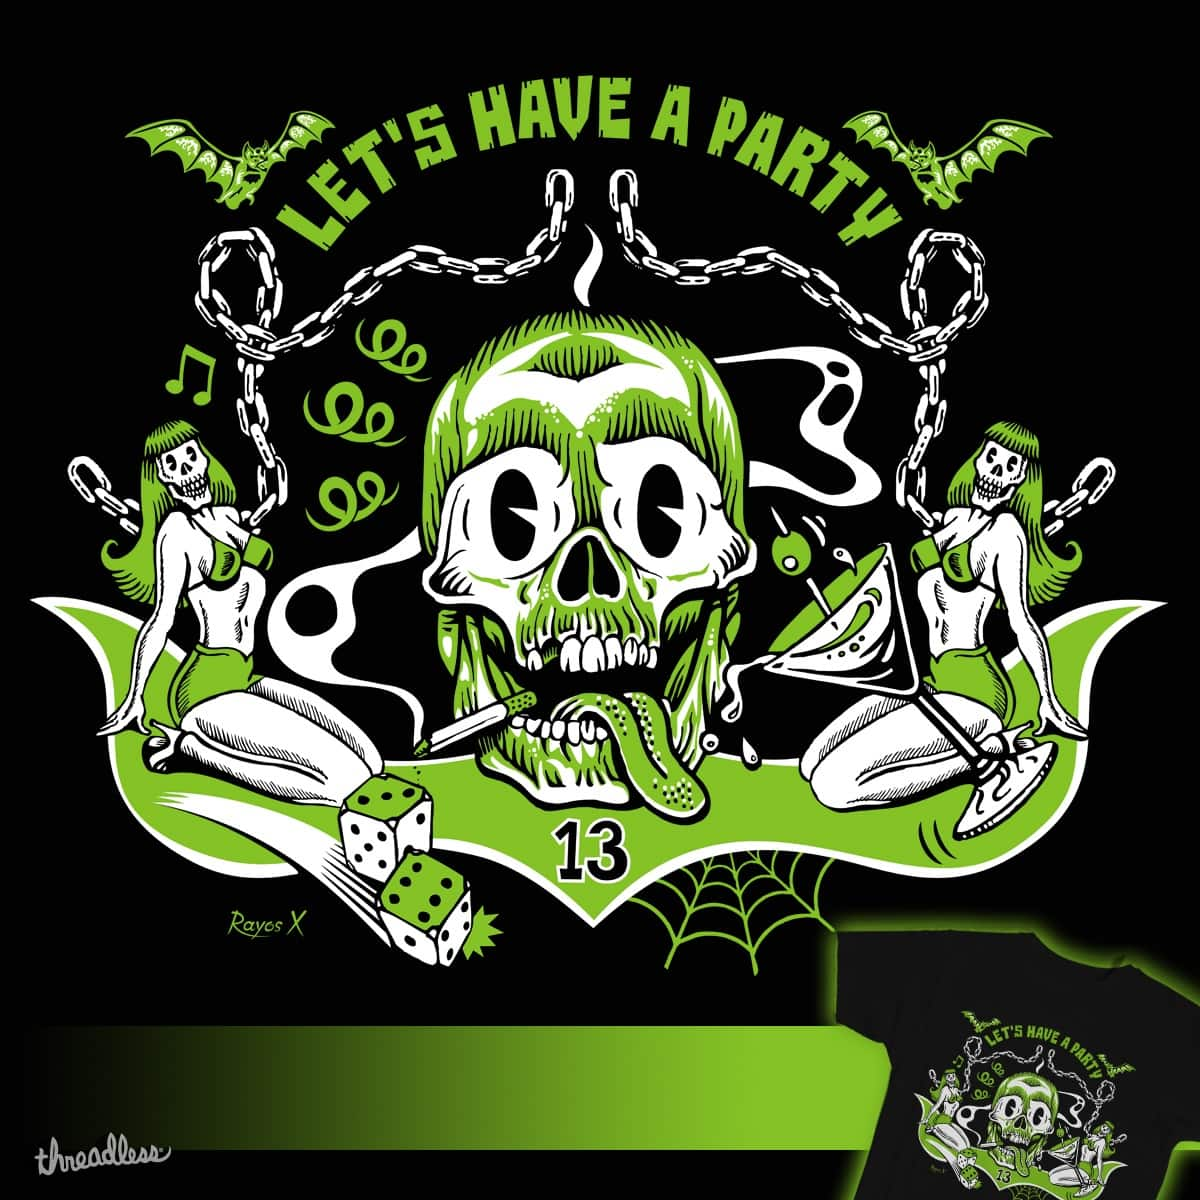 LET'S HAVE A PARTY by RAYOS X on Threadless